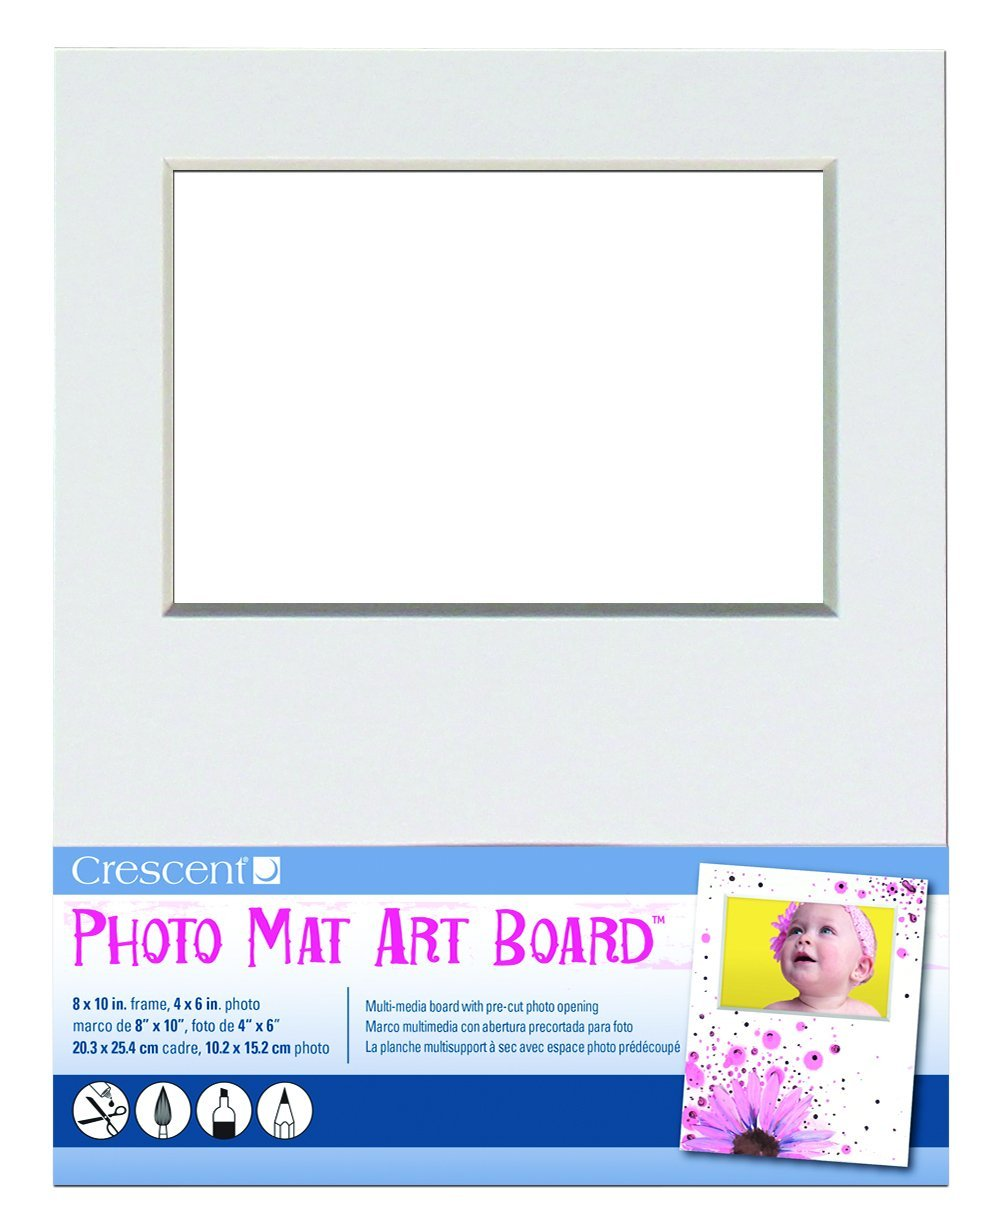 Crescent 12–100 Foto Matte Art Board, 20,3 x 25,4 cm: Amazon.de ...